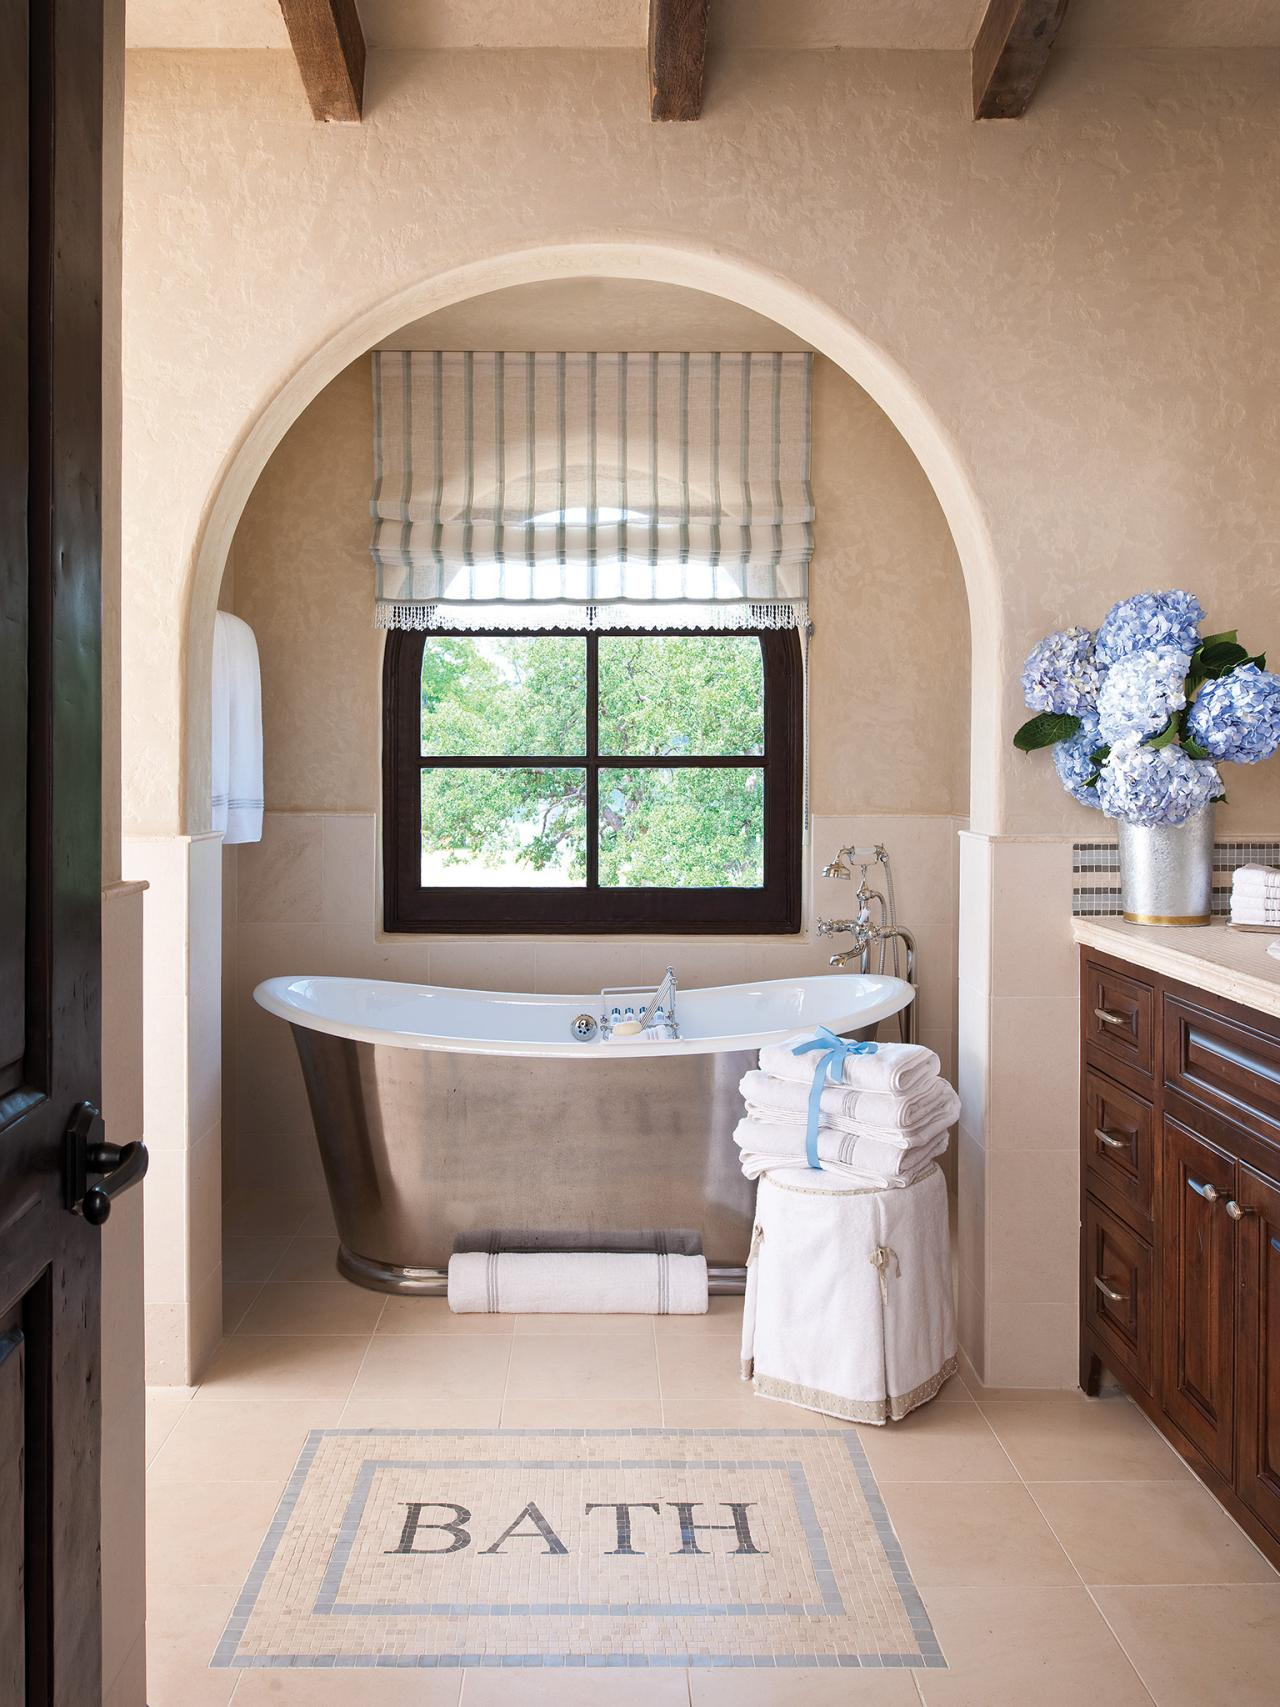 CI-Allure-of-French-and-Italian-Decor_Mosaic-Floor-Tile-Tub-Pg179_3x4.jpg.rend.hgtvcom.1280.1707